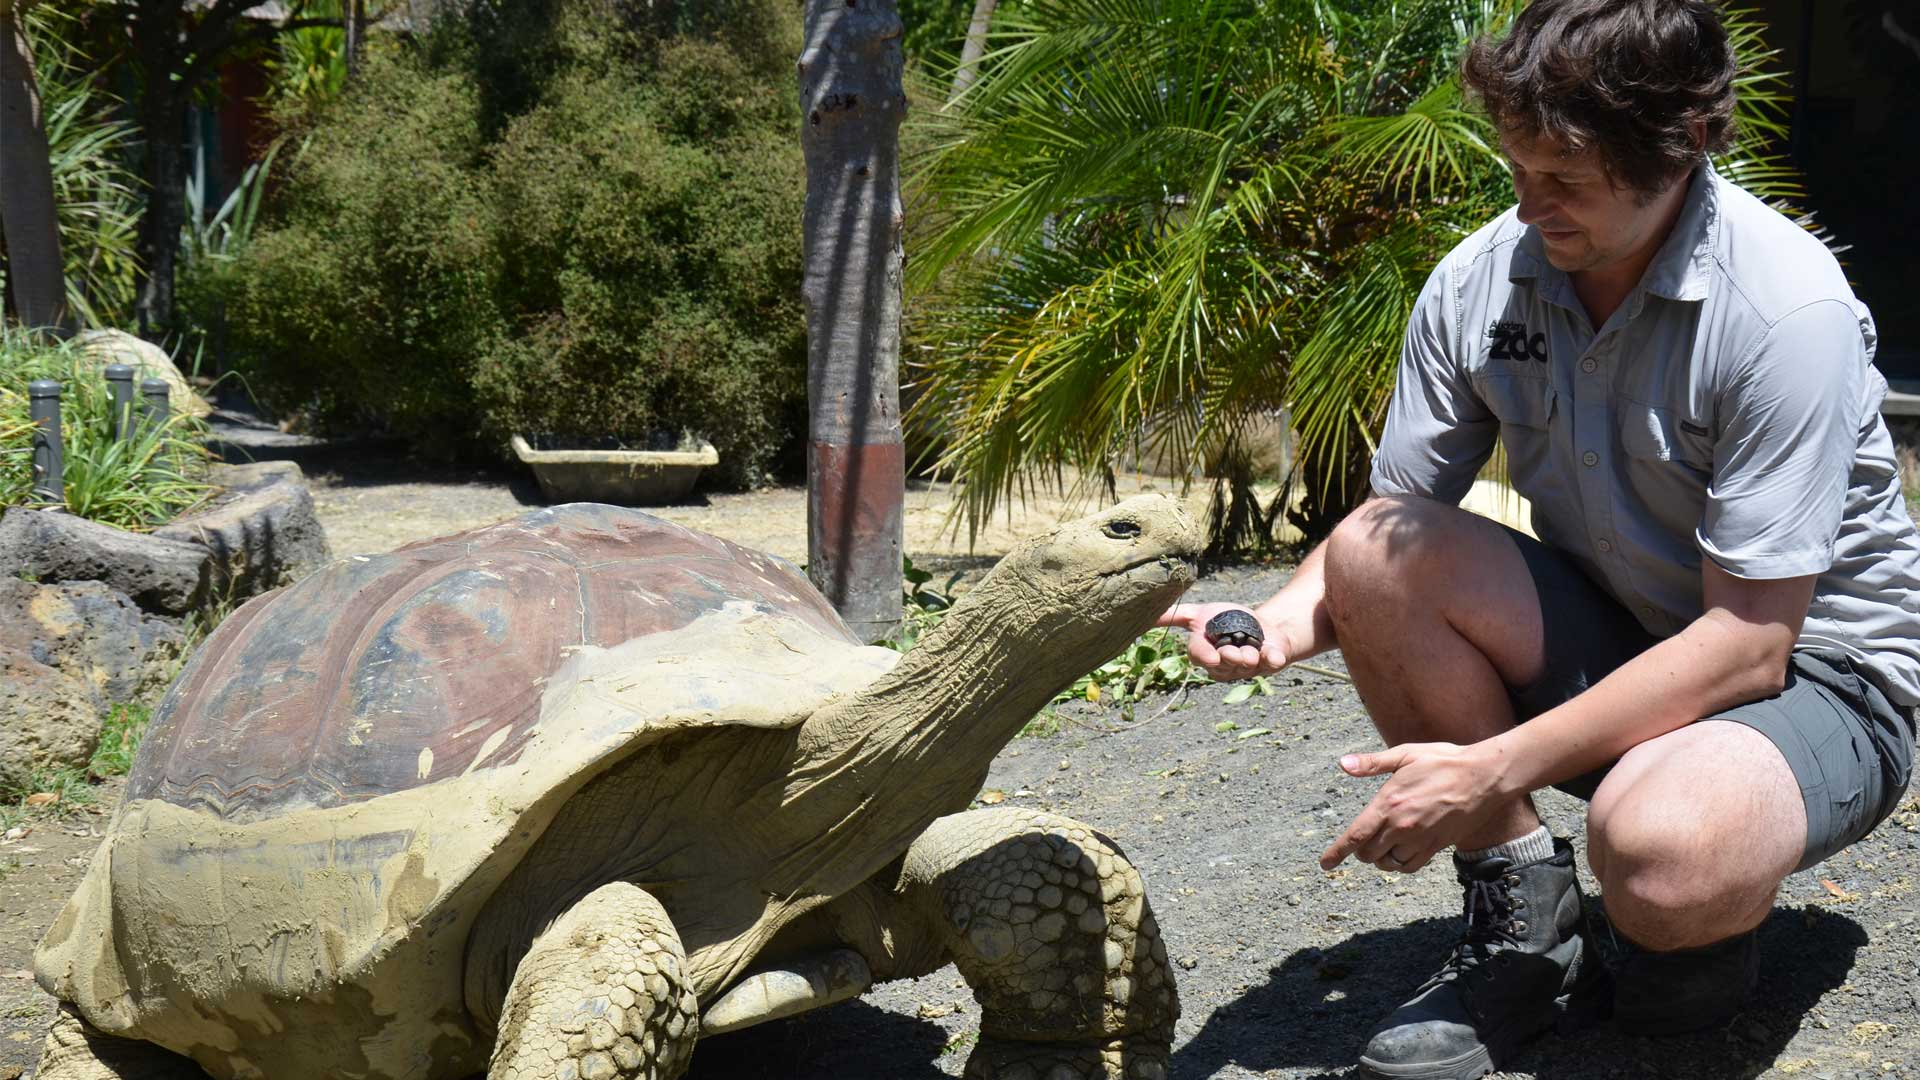 https://rfacdn.nz/zoo/assets/media/galapagos-hatching-with-don-gallery-1.jpg